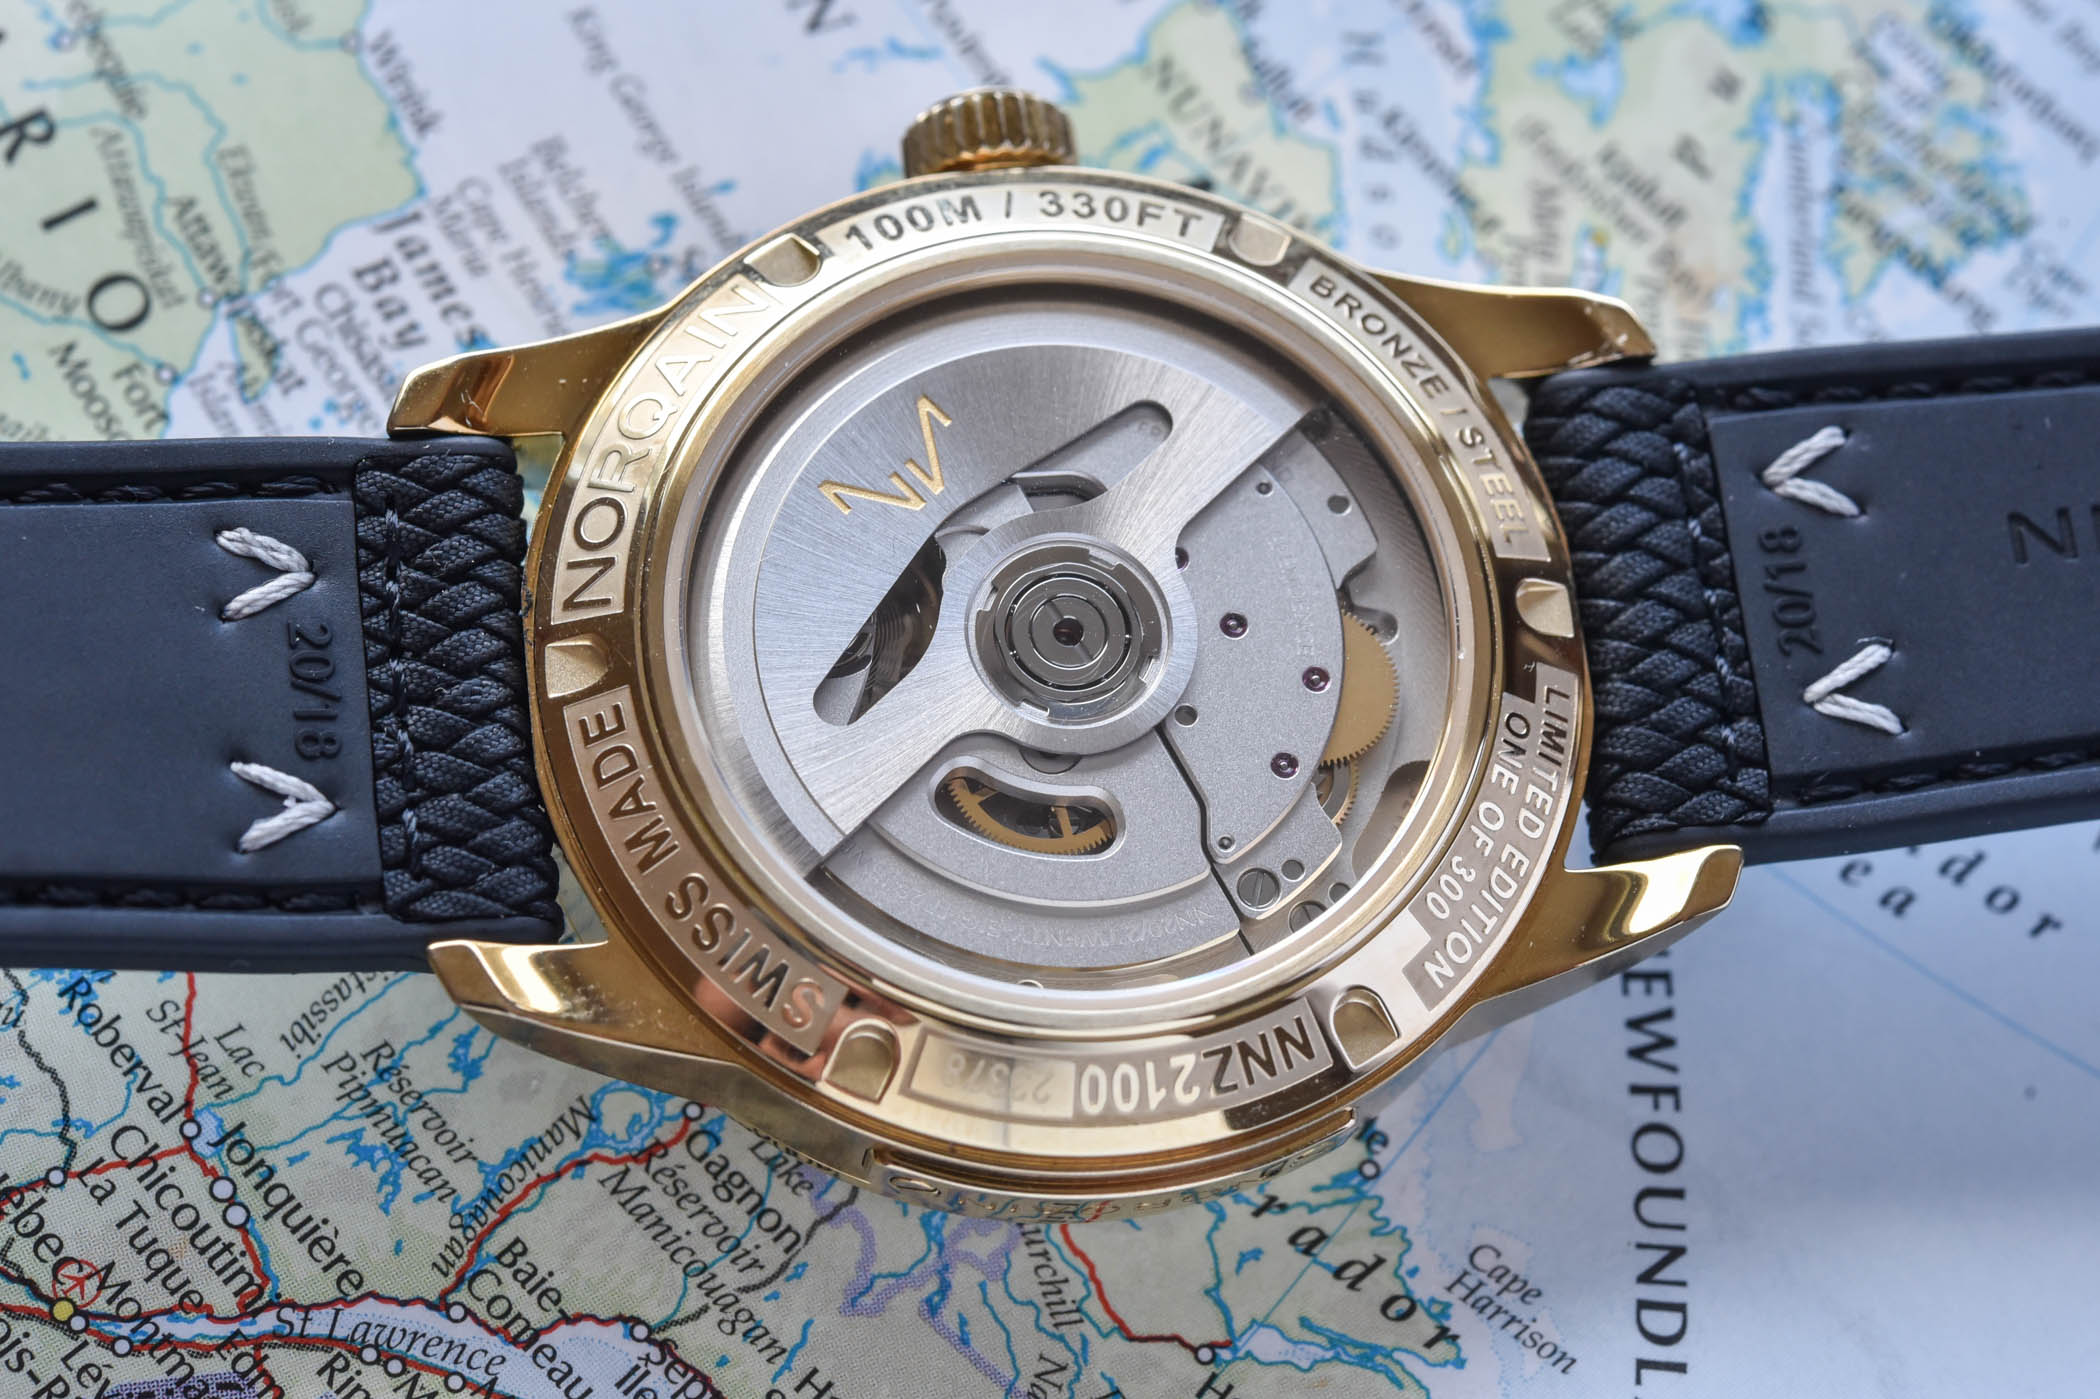 Norqain Freedom 60 GMT Bronze Green dial limited edition